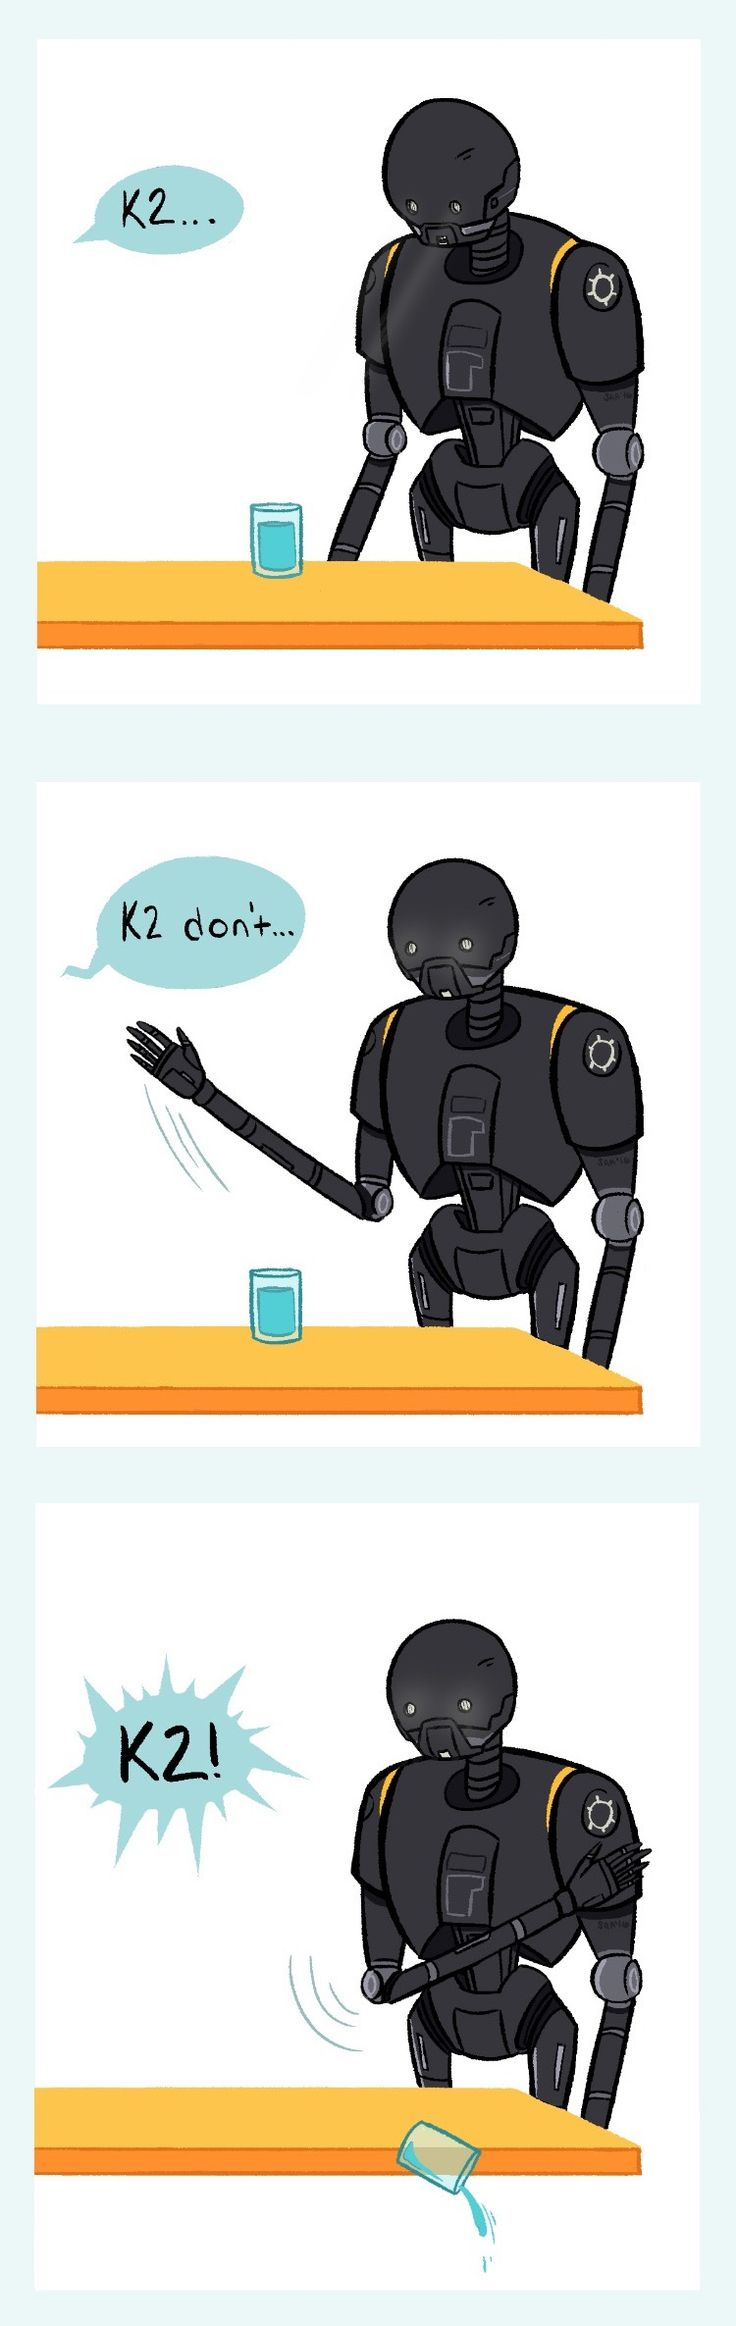 K-2SO: the feline mascot of Rogue One